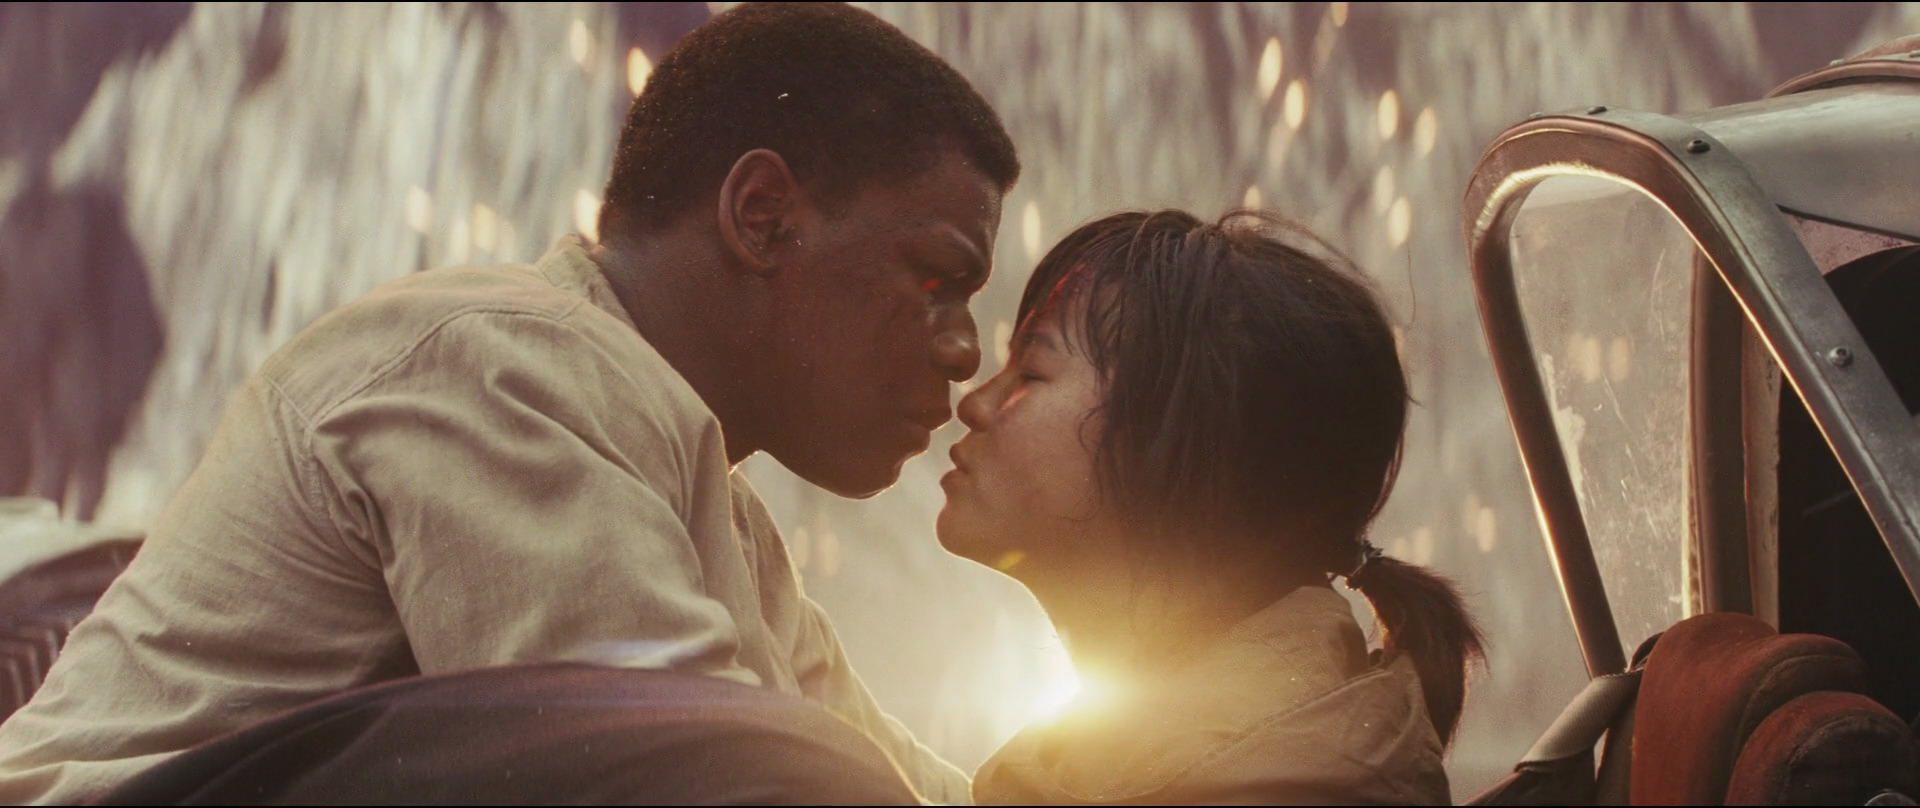 I've Got Some Complicated Feelings About Rose Tico's